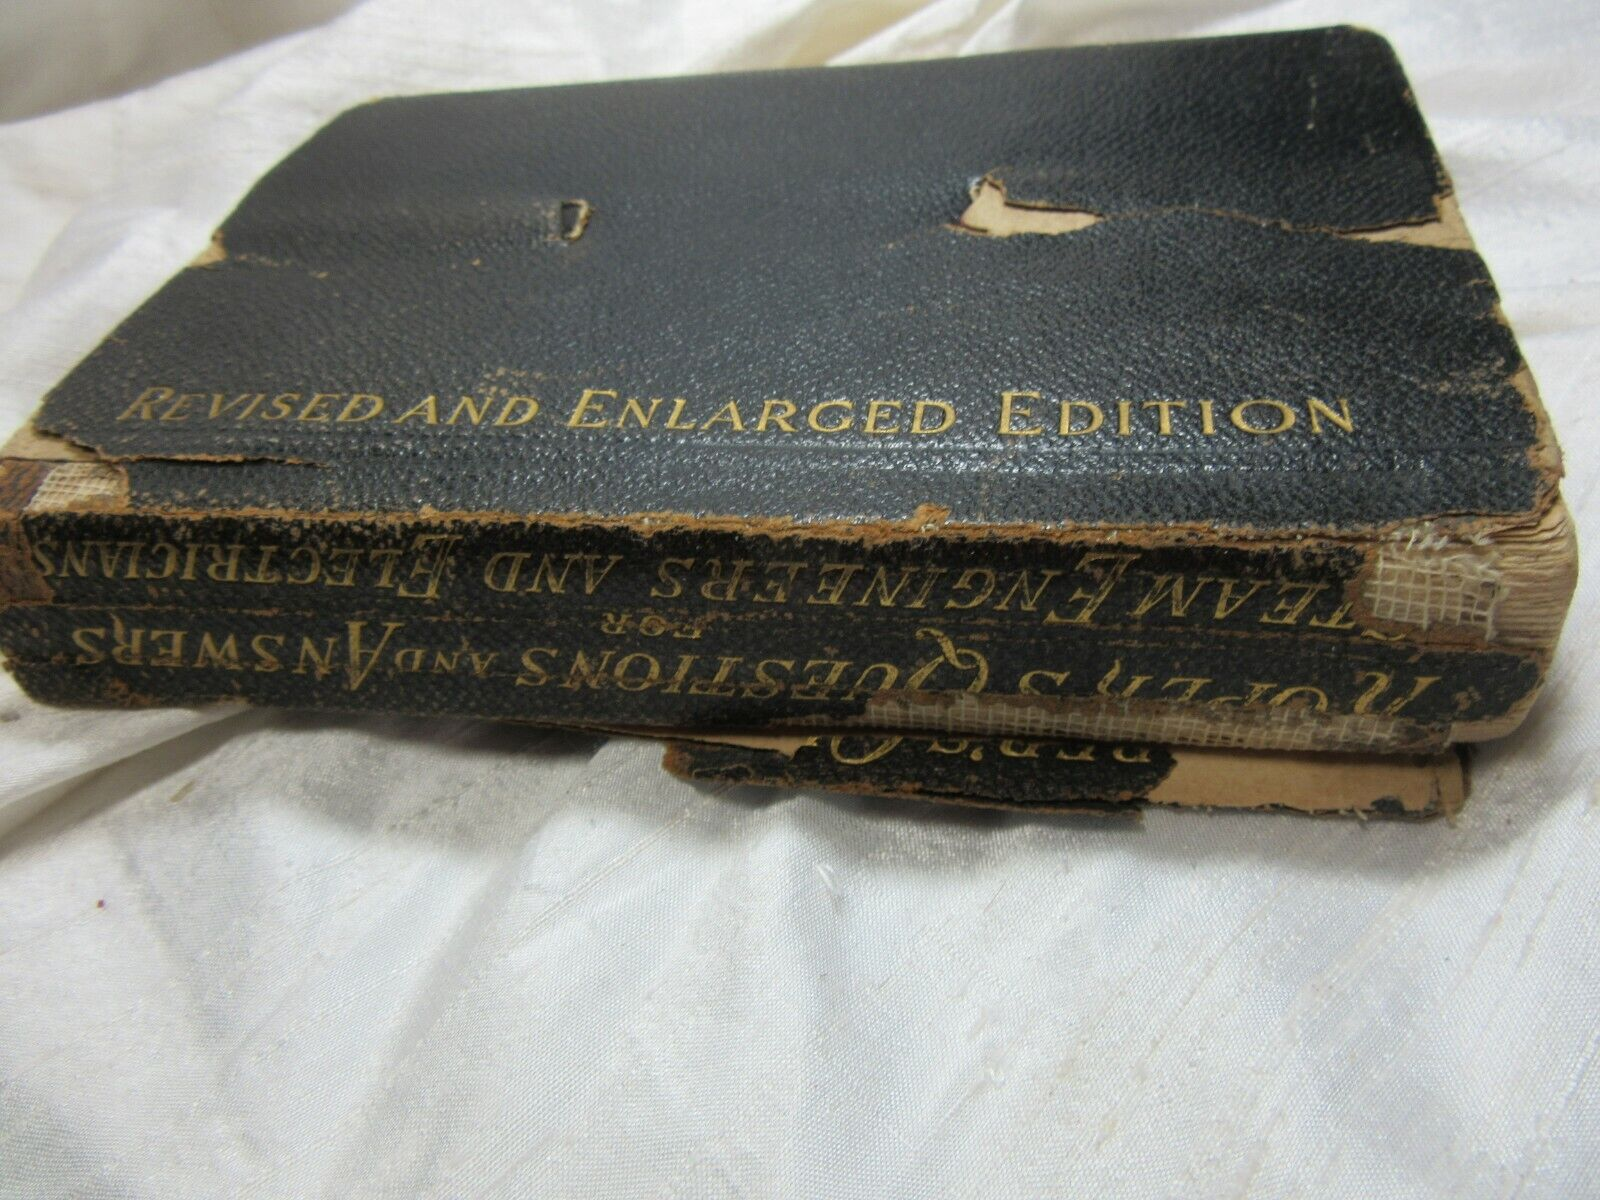 1897 Roper's Questions and Answers for Engineers and Electricians Reference Book